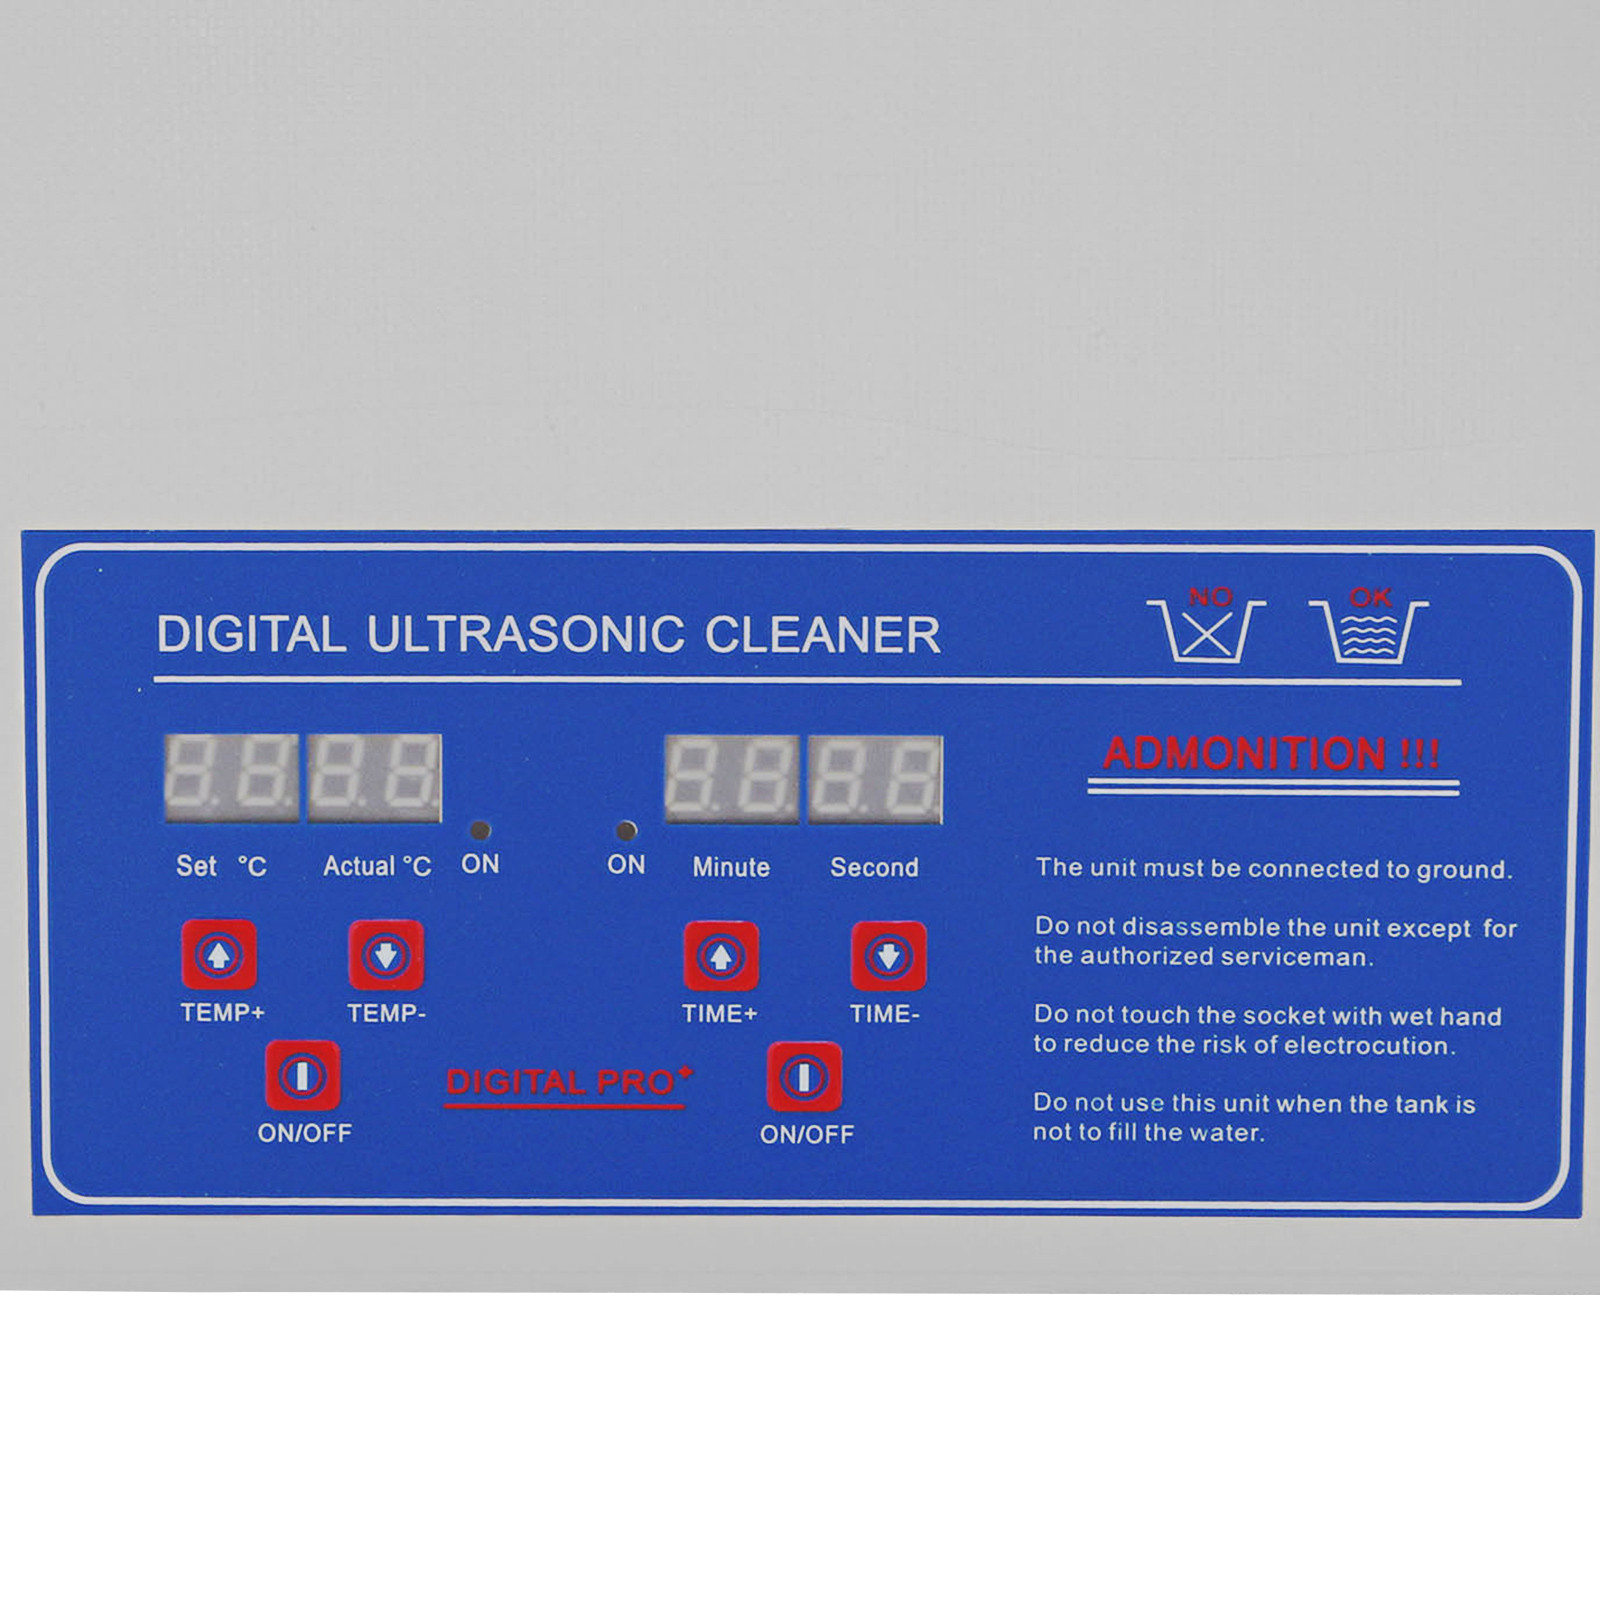 Multi-Ultrasonic-Cleaner-Supplies-Jewelry-1-3-2L-3L-6L-10L-15L-22L-30L thumbnail 104